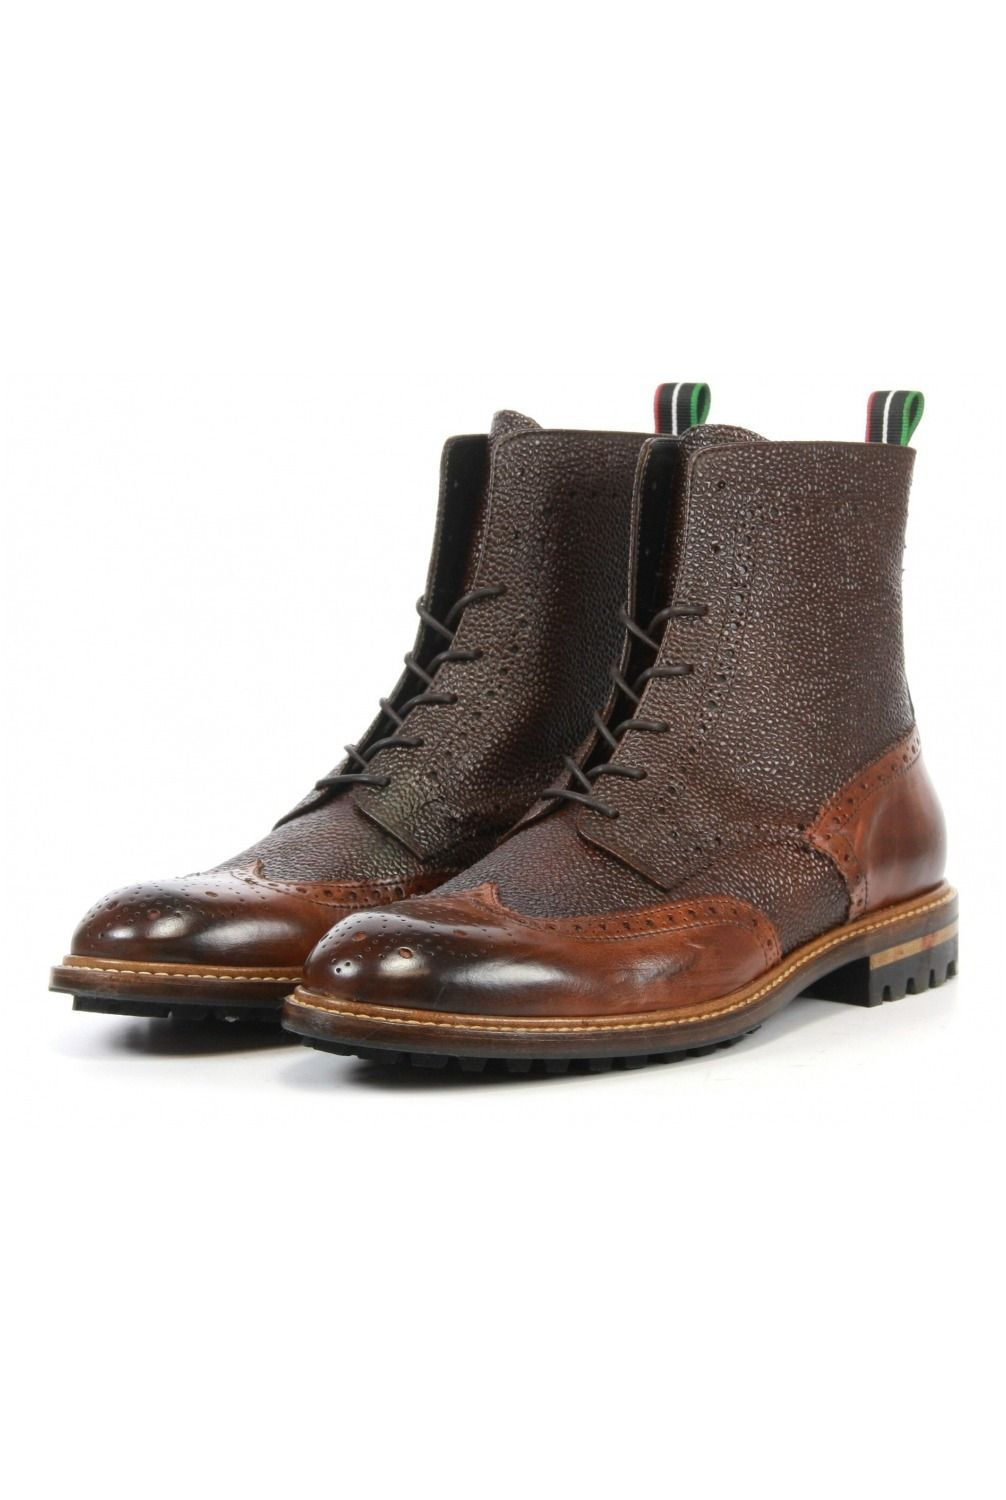 Look - Stylish mens shoes video